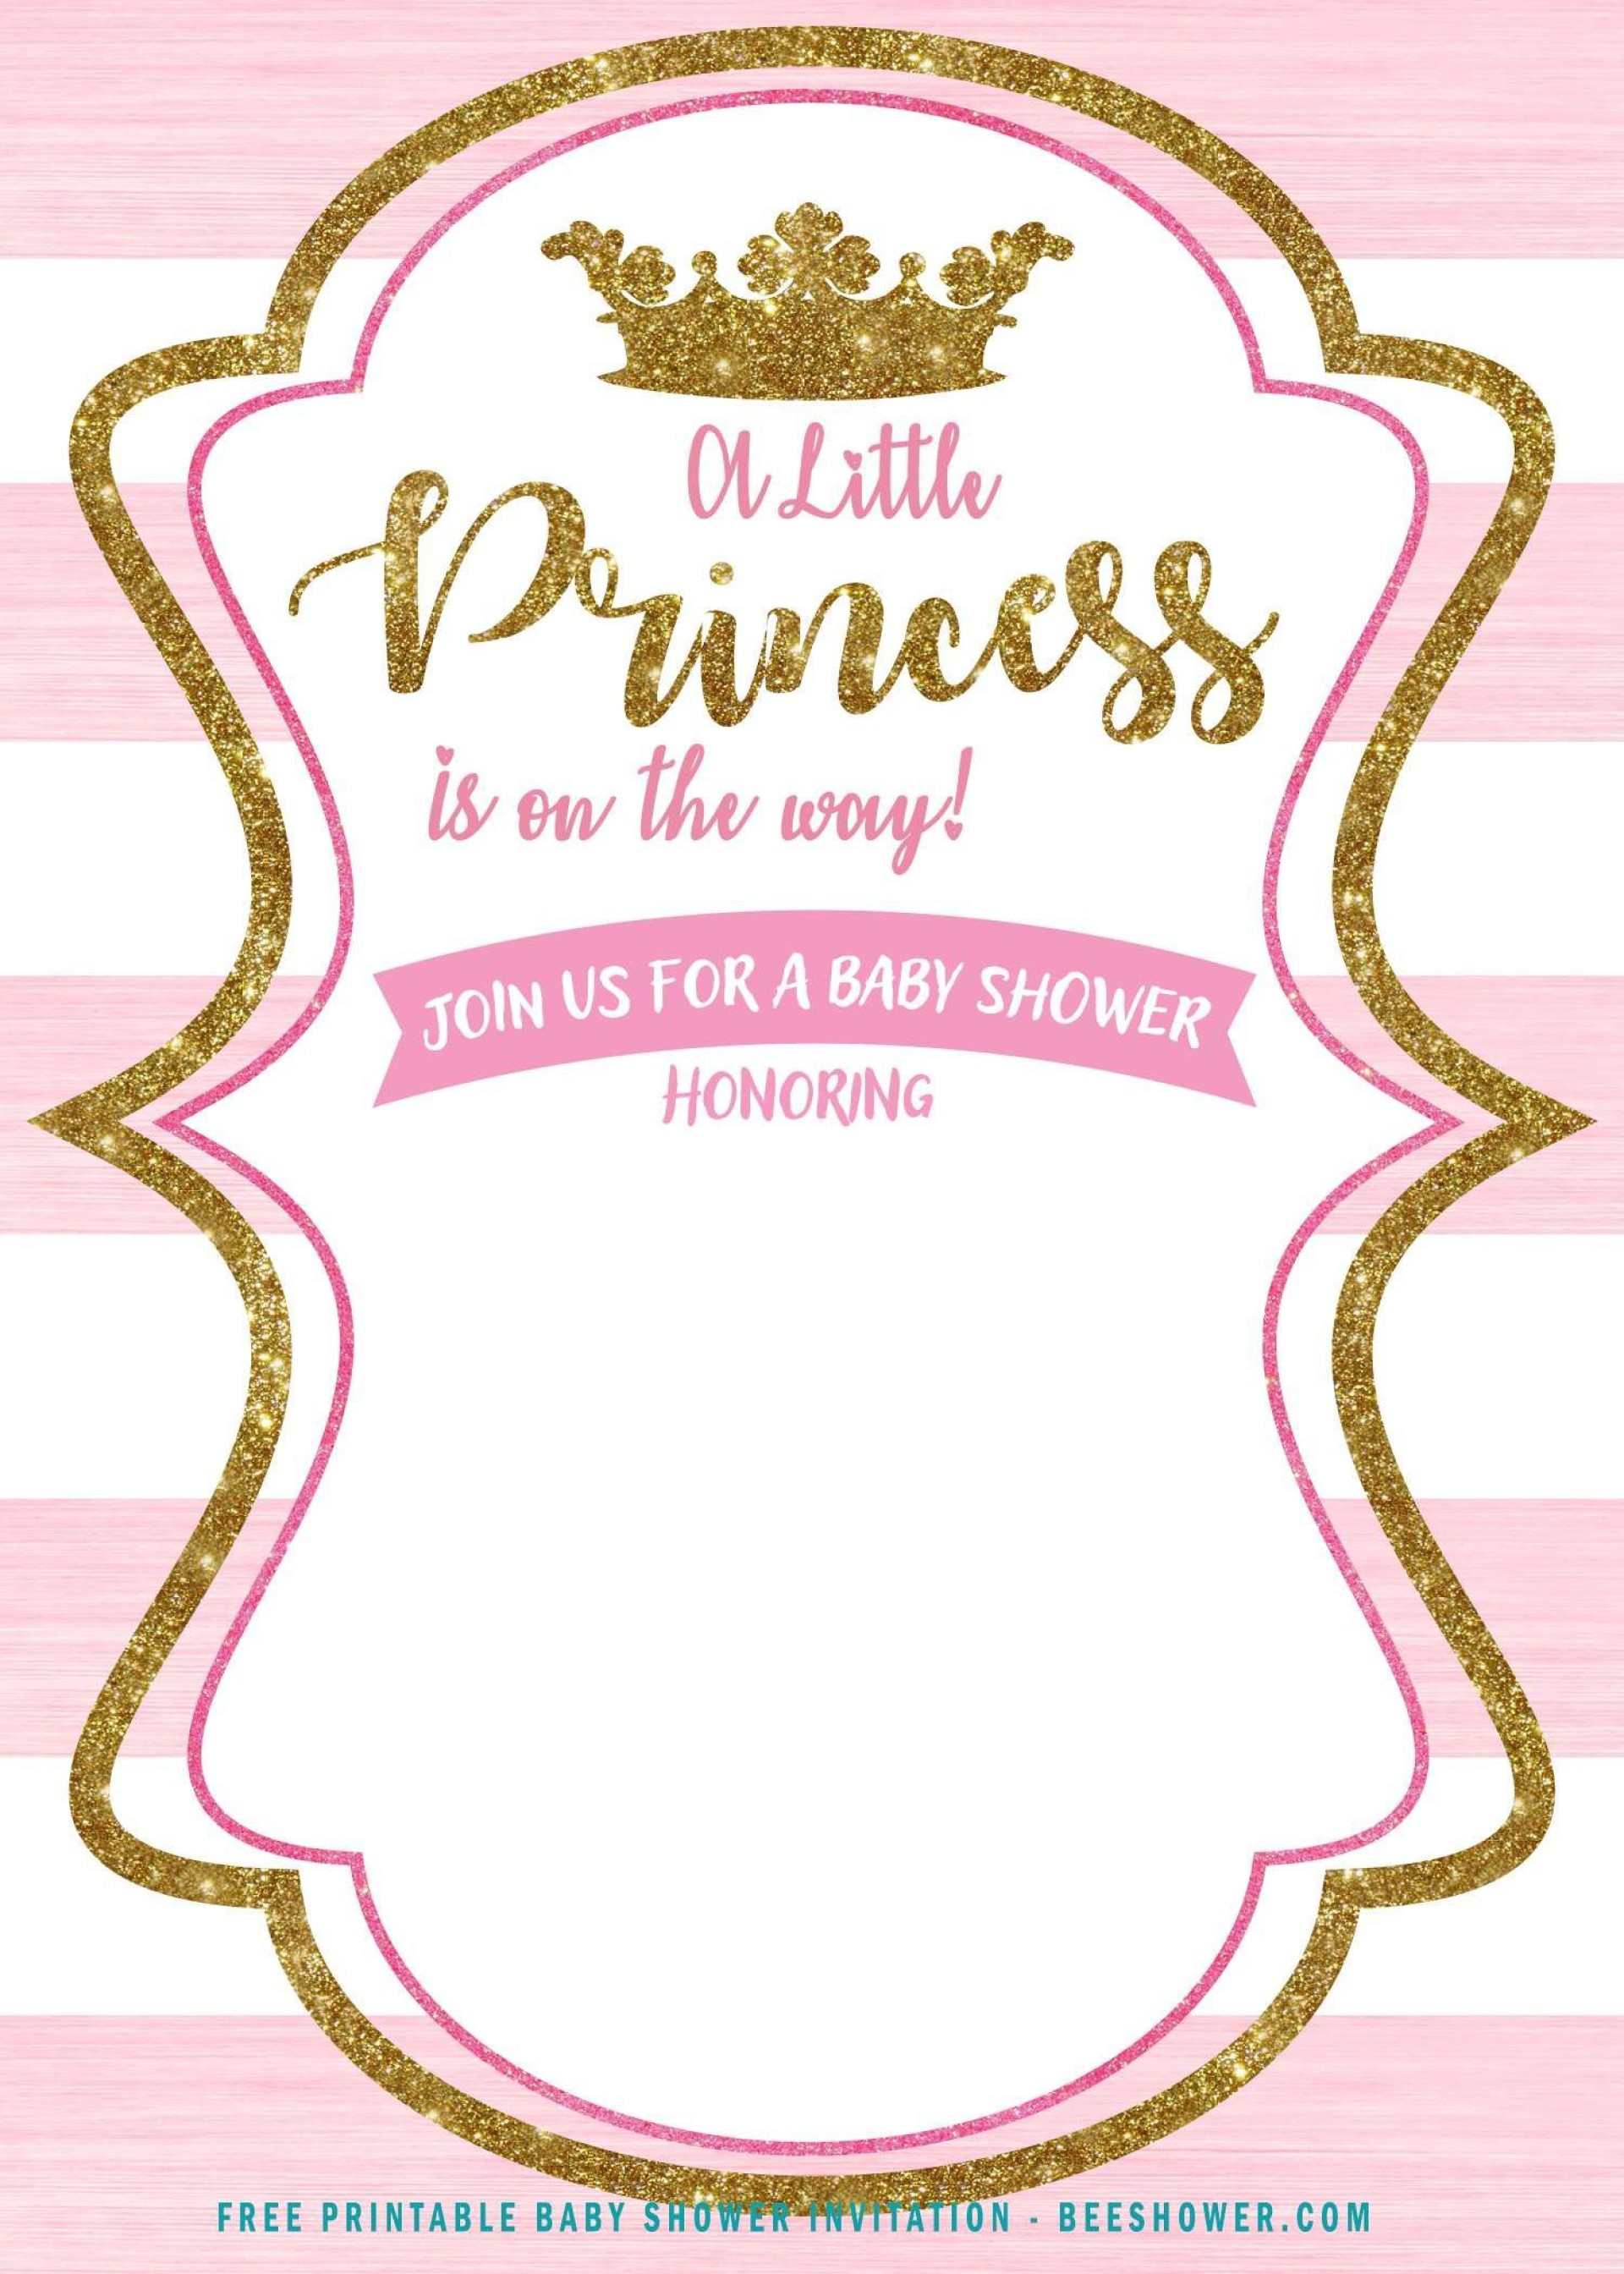 007 Archaicawful Princes Baby Shower Invitation Template Highest Clarity  Templates Little Royal Red Disney1920